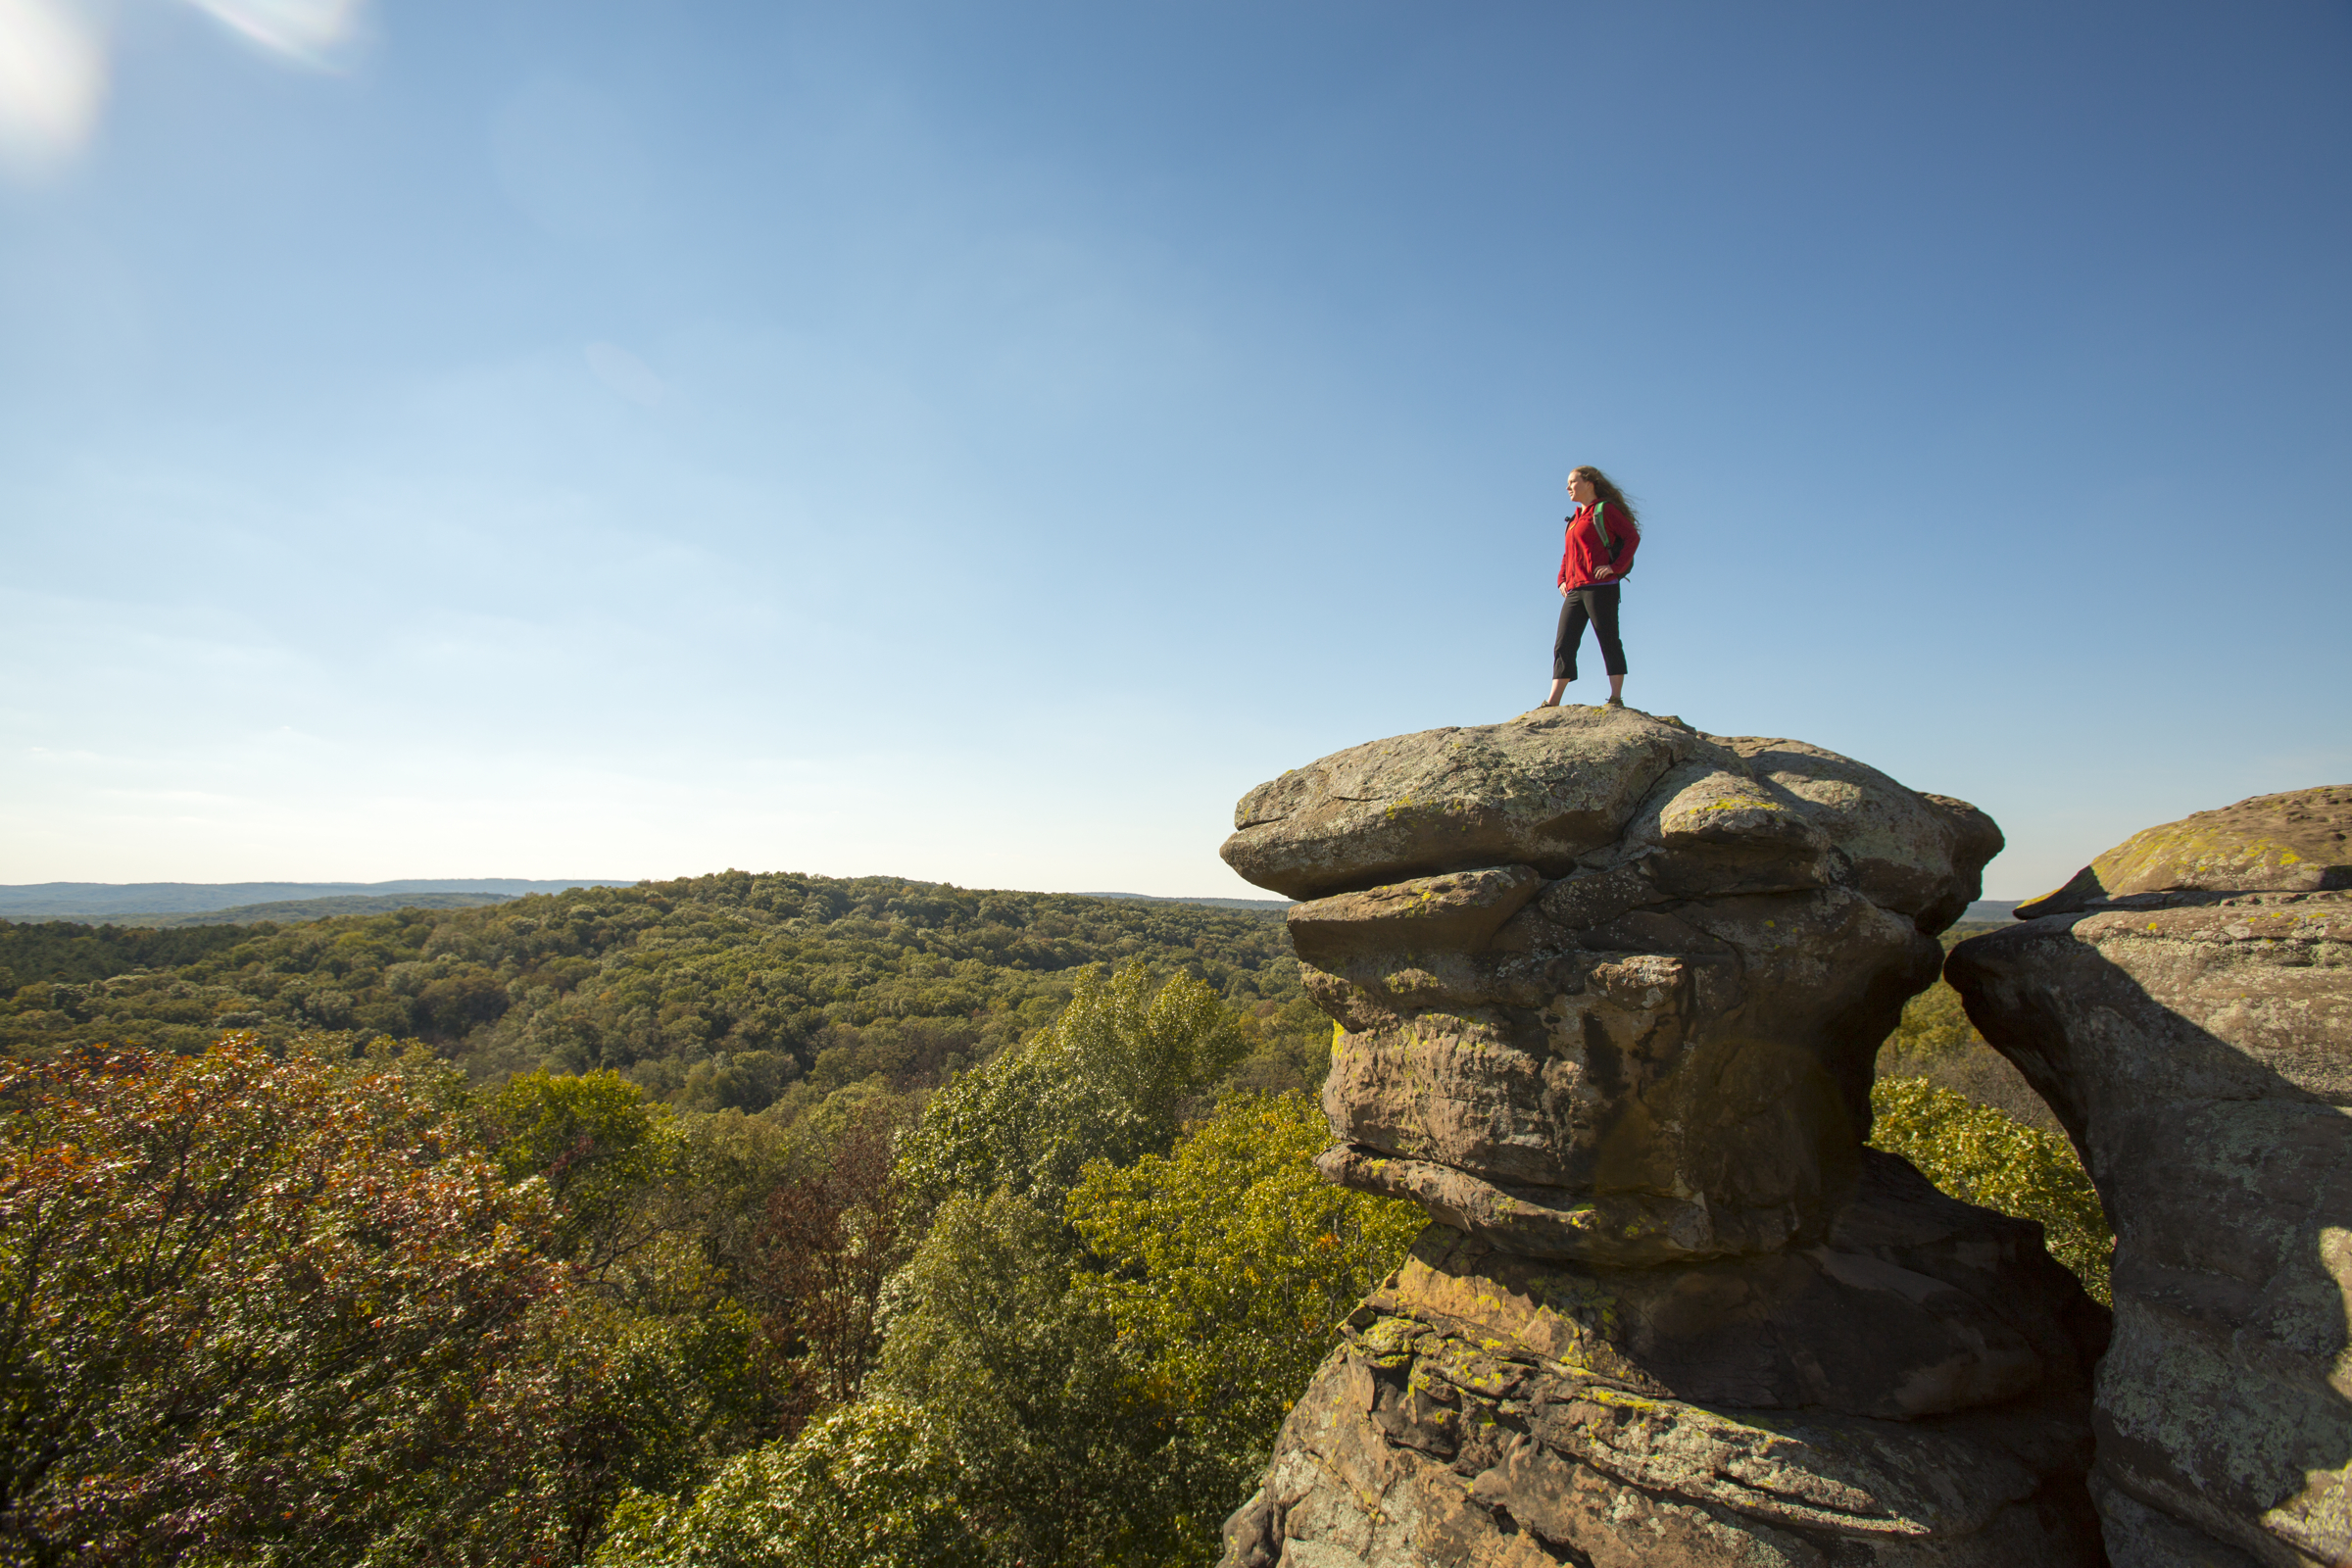 Illinois-SHAWNEE-national-PARK-garden-of-gods-hiker.JPG?mtime=20180412101851#asset:101391